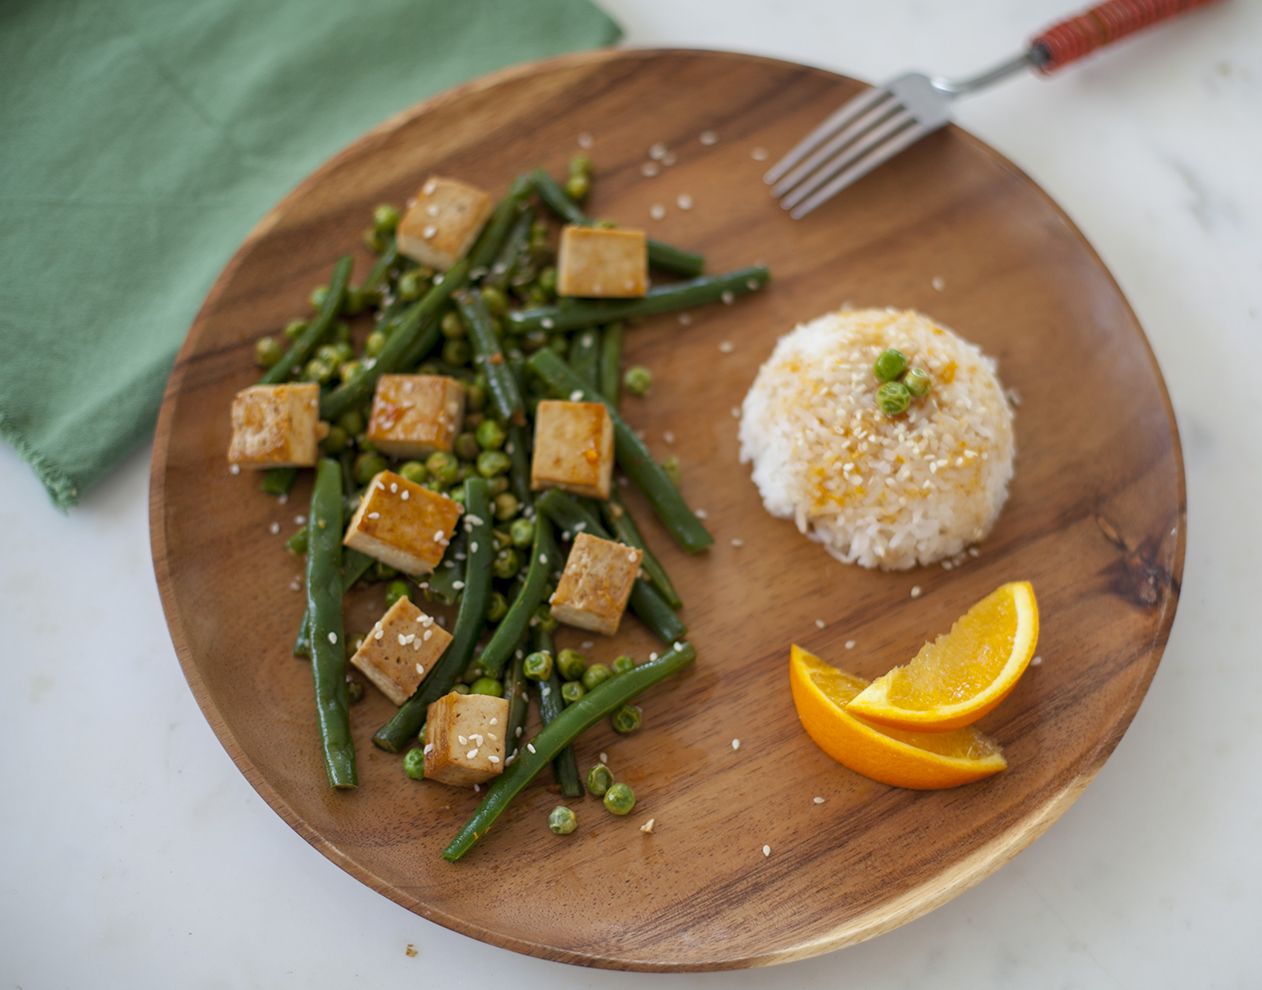 Stir-fried With Green Beans And Peas, And Tofu With A Beet Orange Sauce